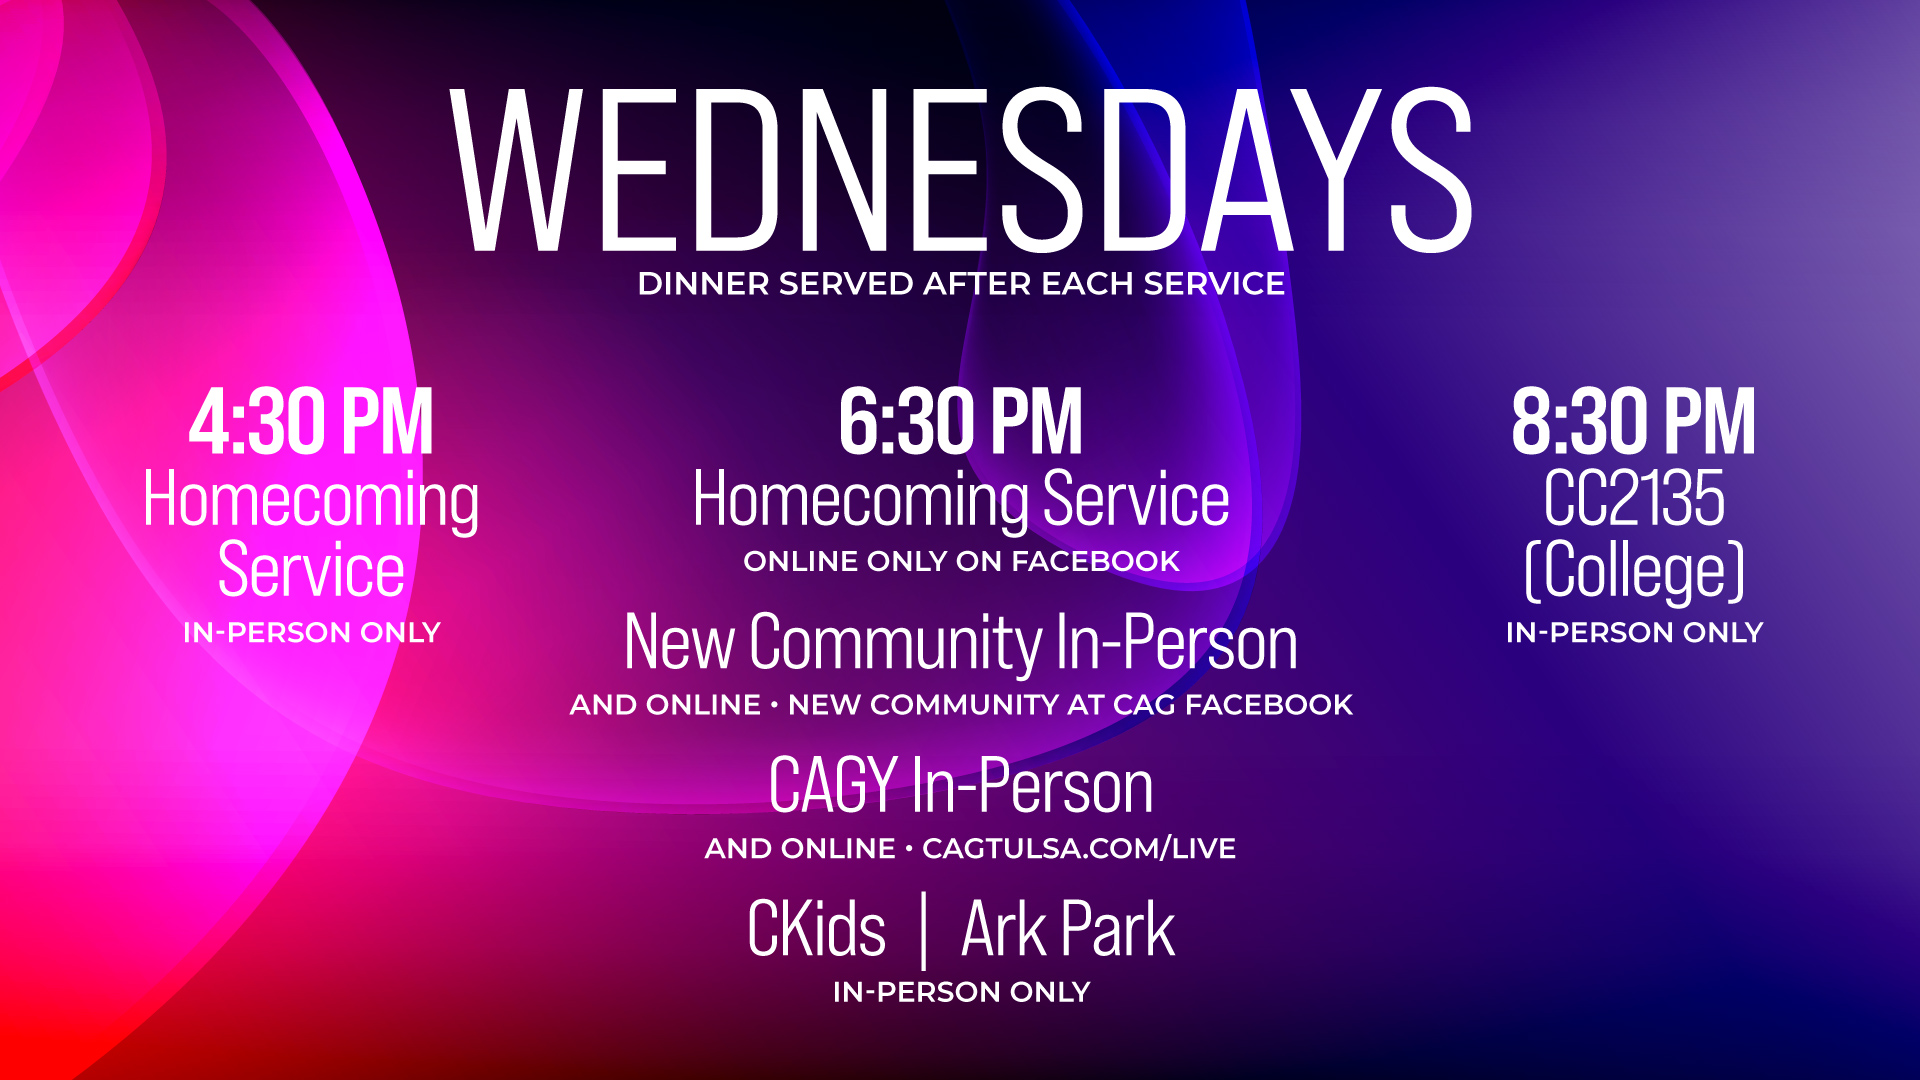 wednesday-service-times